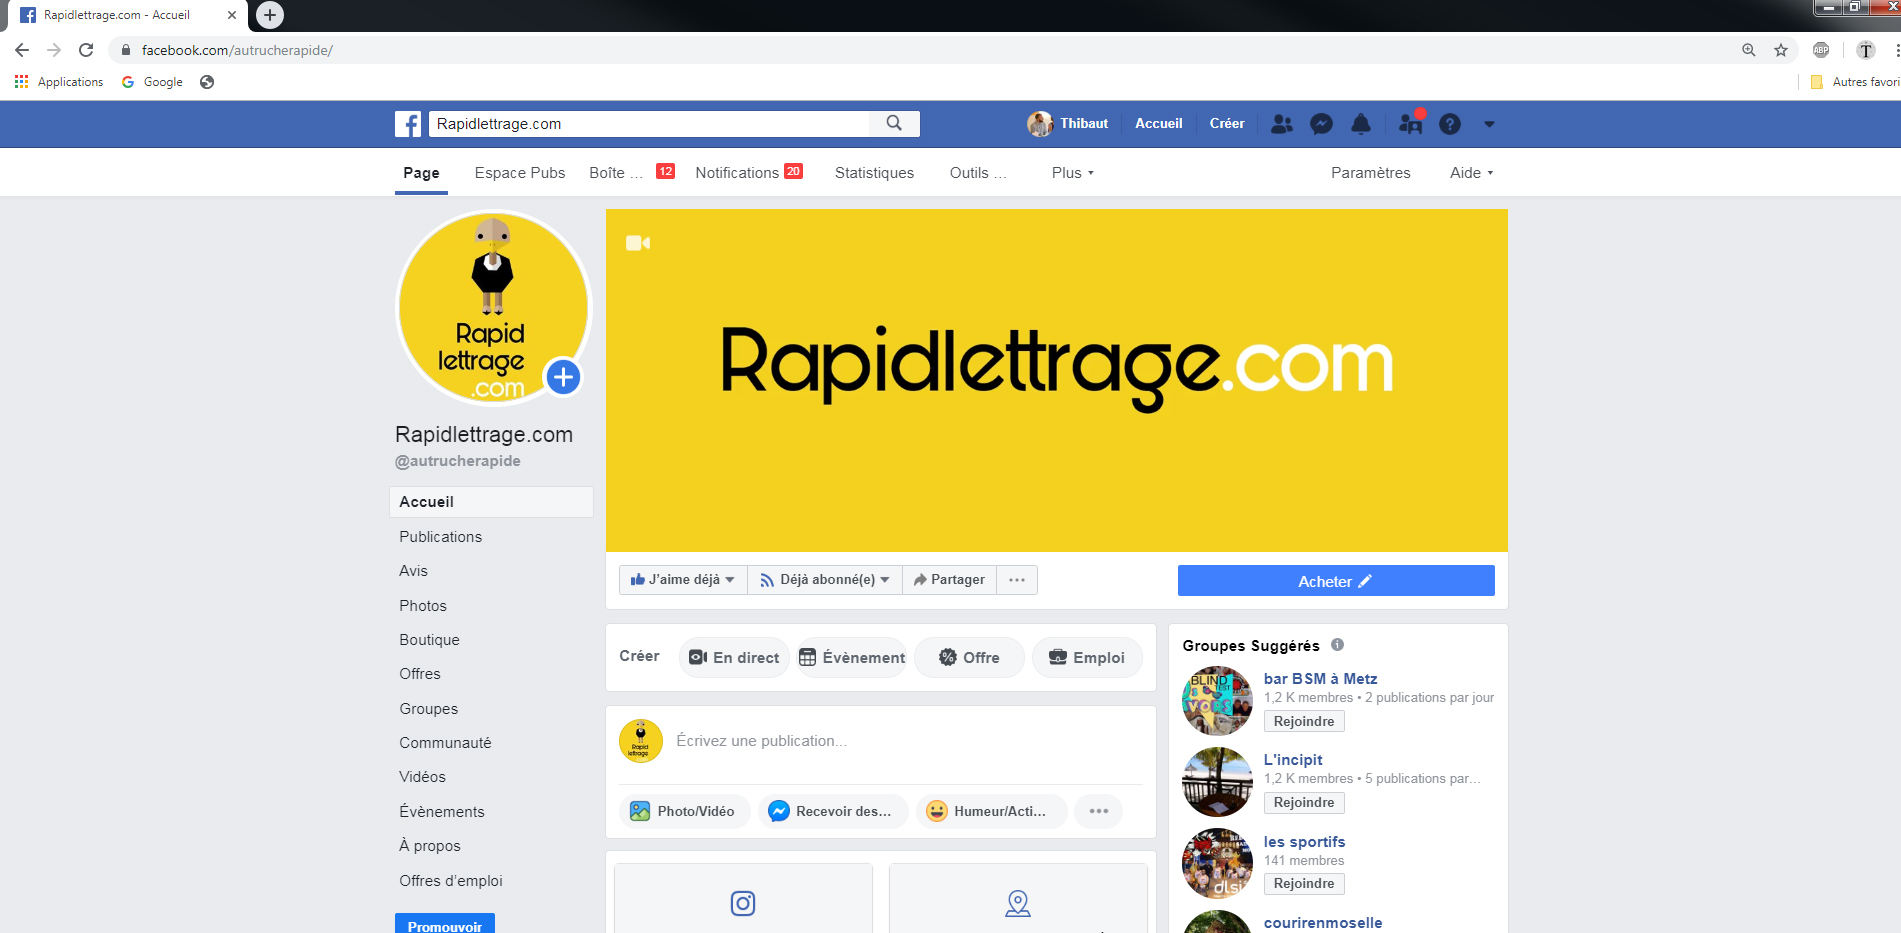 Facebook Rapidlettrage